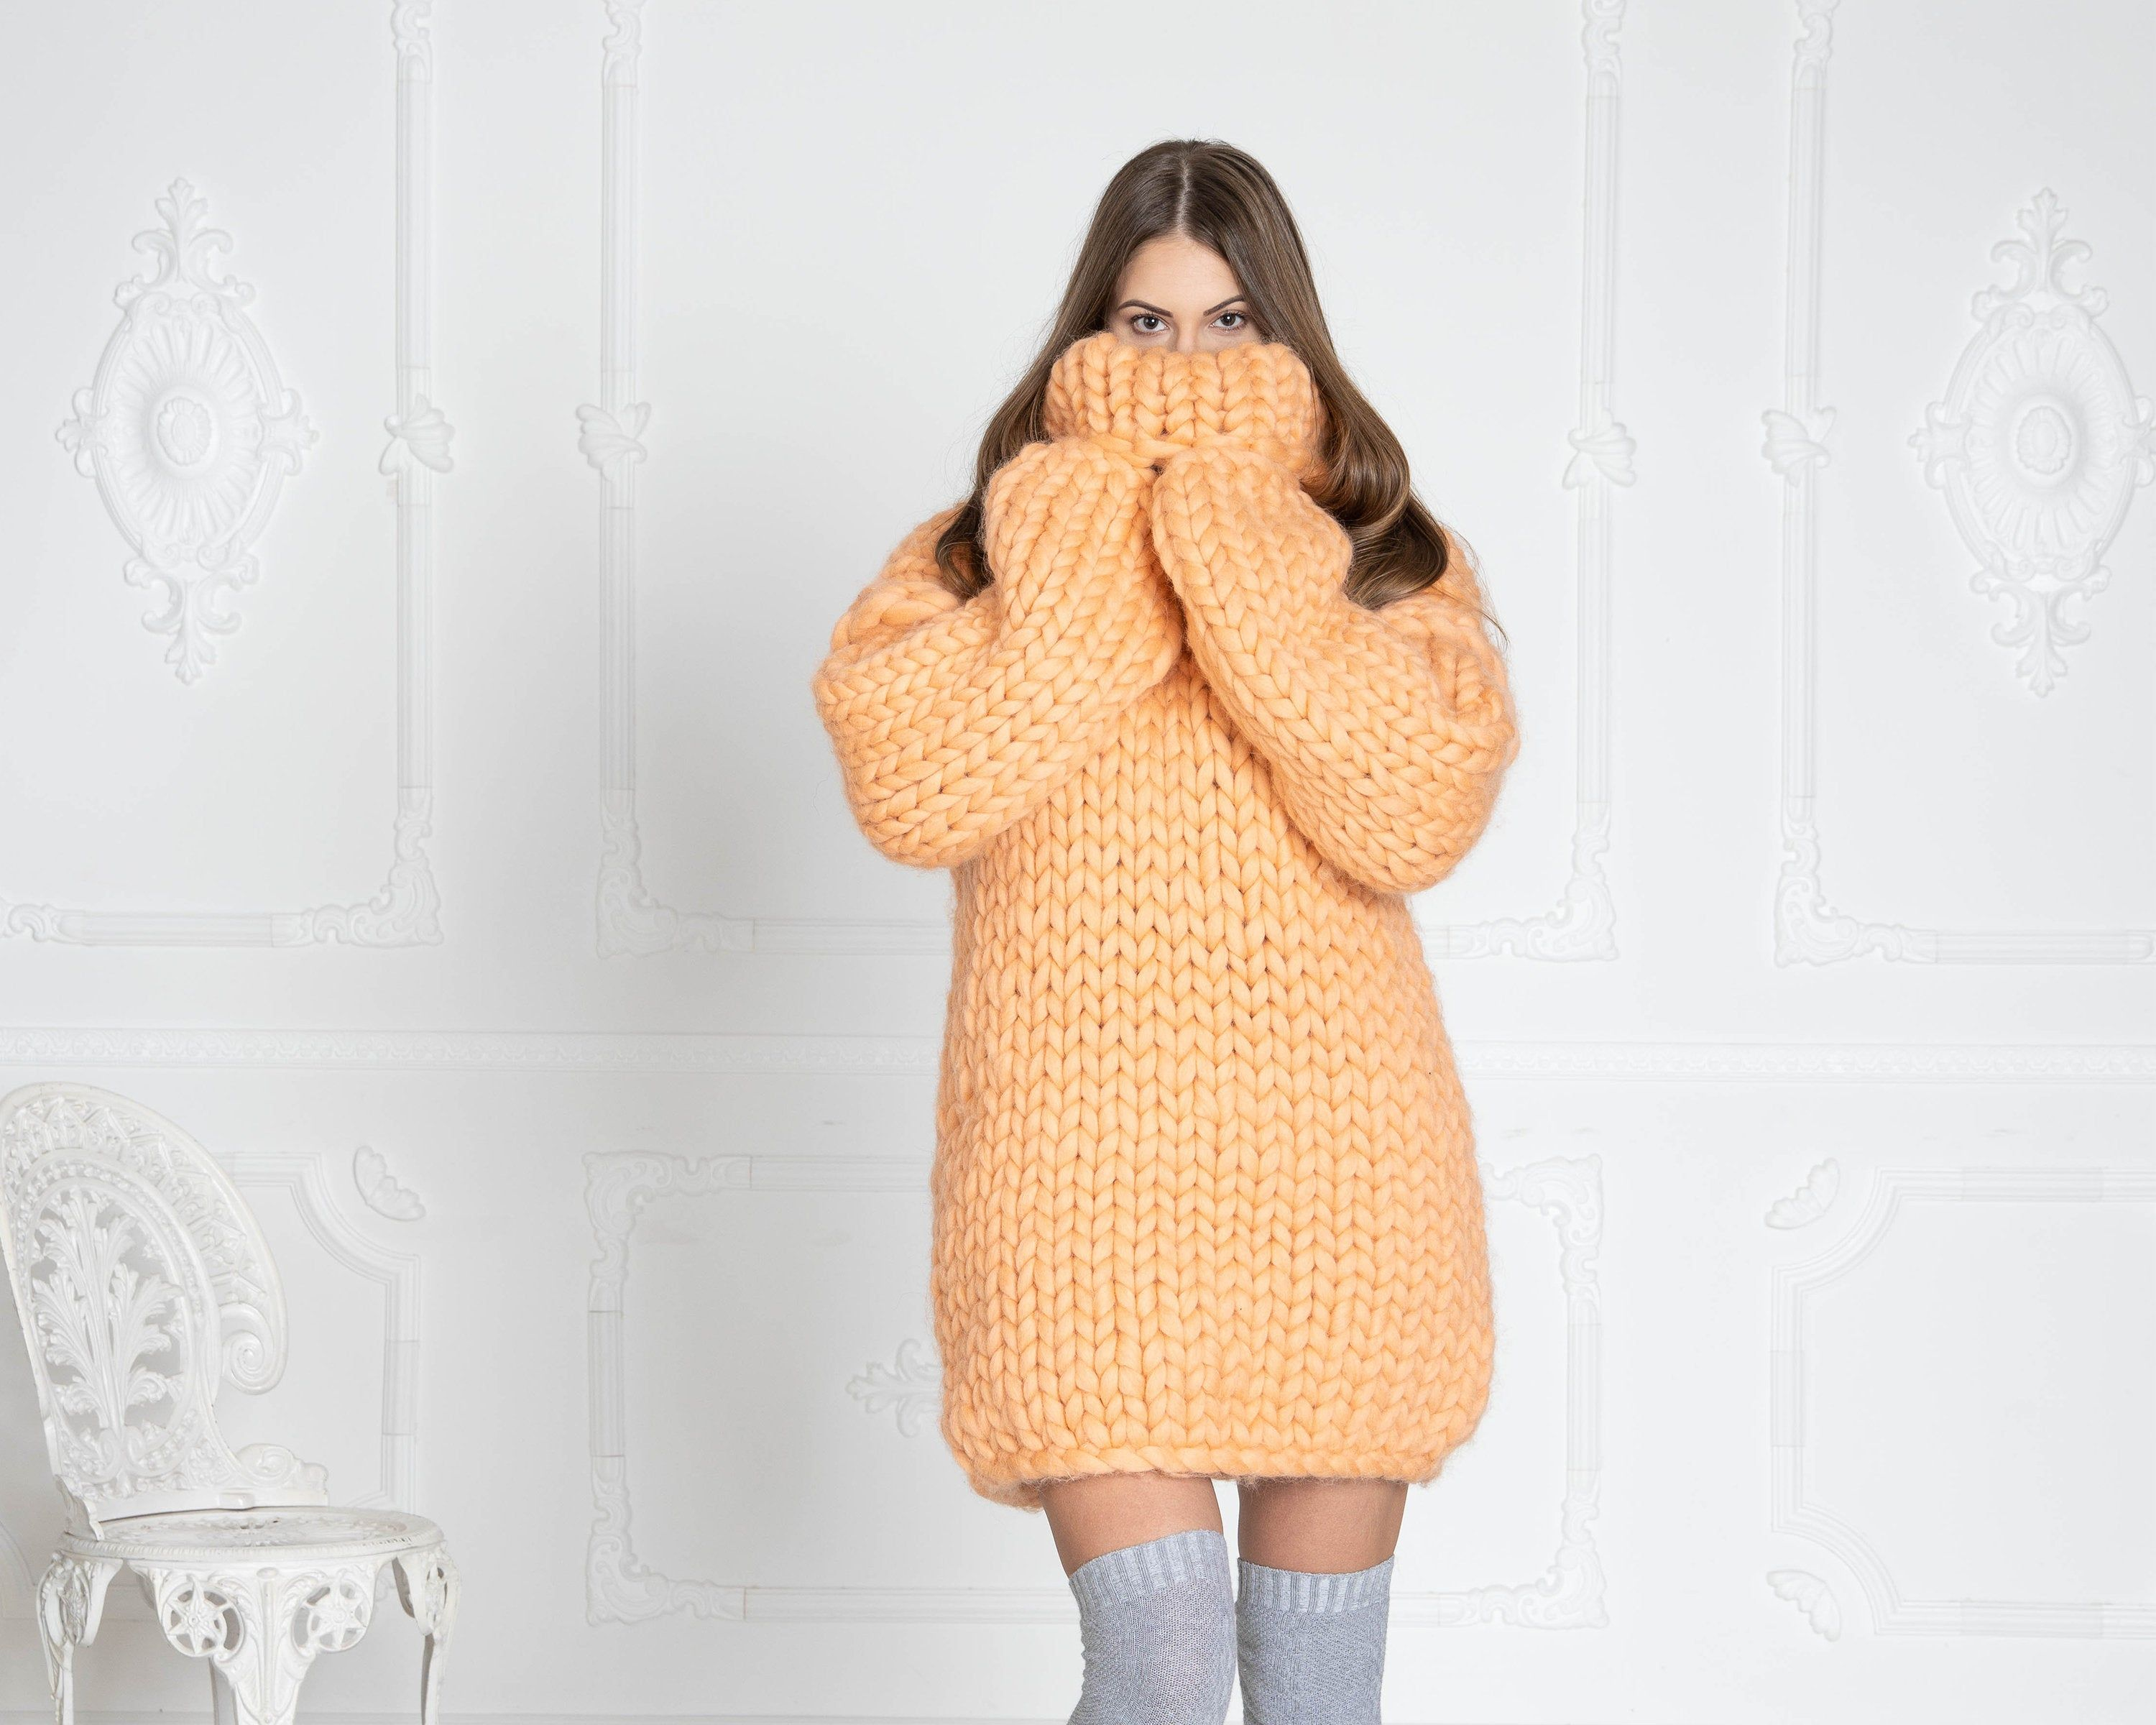 Thick KNIT SWEATER, Cables bulky sweater, Woman Giant knit